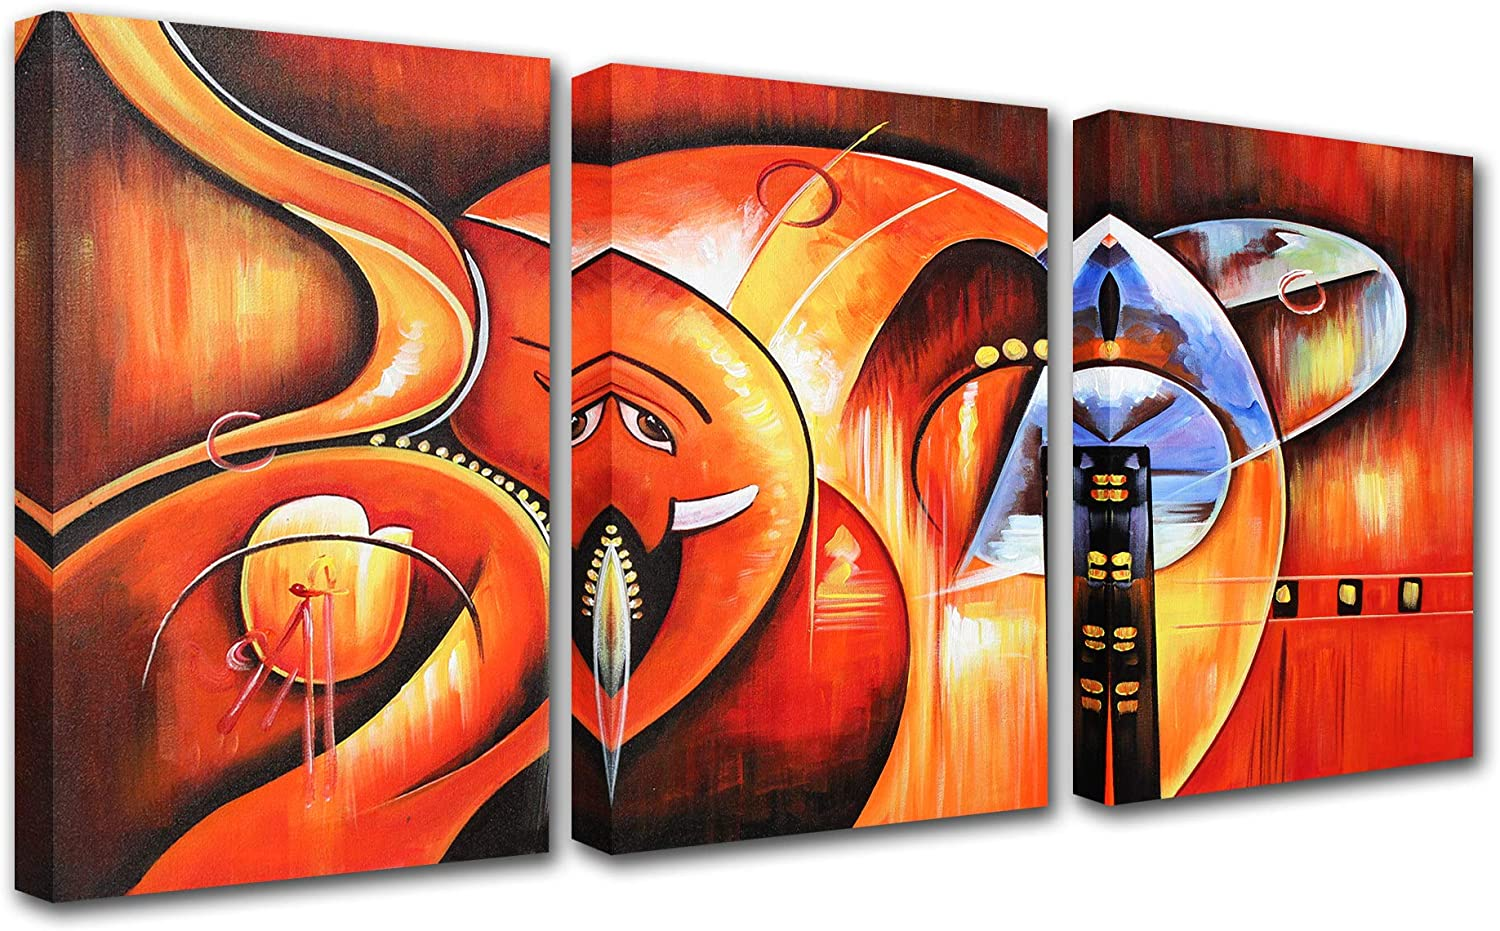 Lord Ganesha Hindu God Canvas Wall Art Living for Room Decor P 3 OFFer free shipping